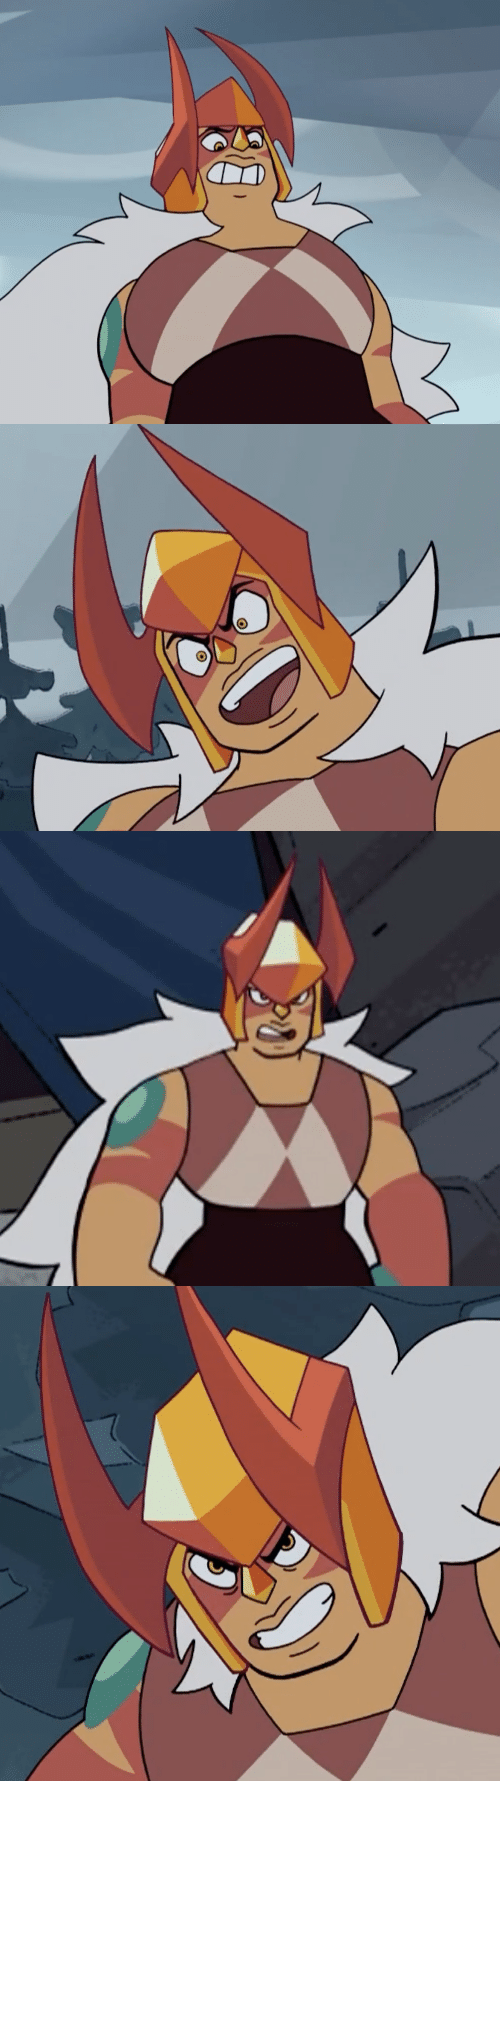 so sick: terrorbeaks: Ok but Jasper's helmet with the horns looks so sick.    Only good thing today apart from Doom Eternal